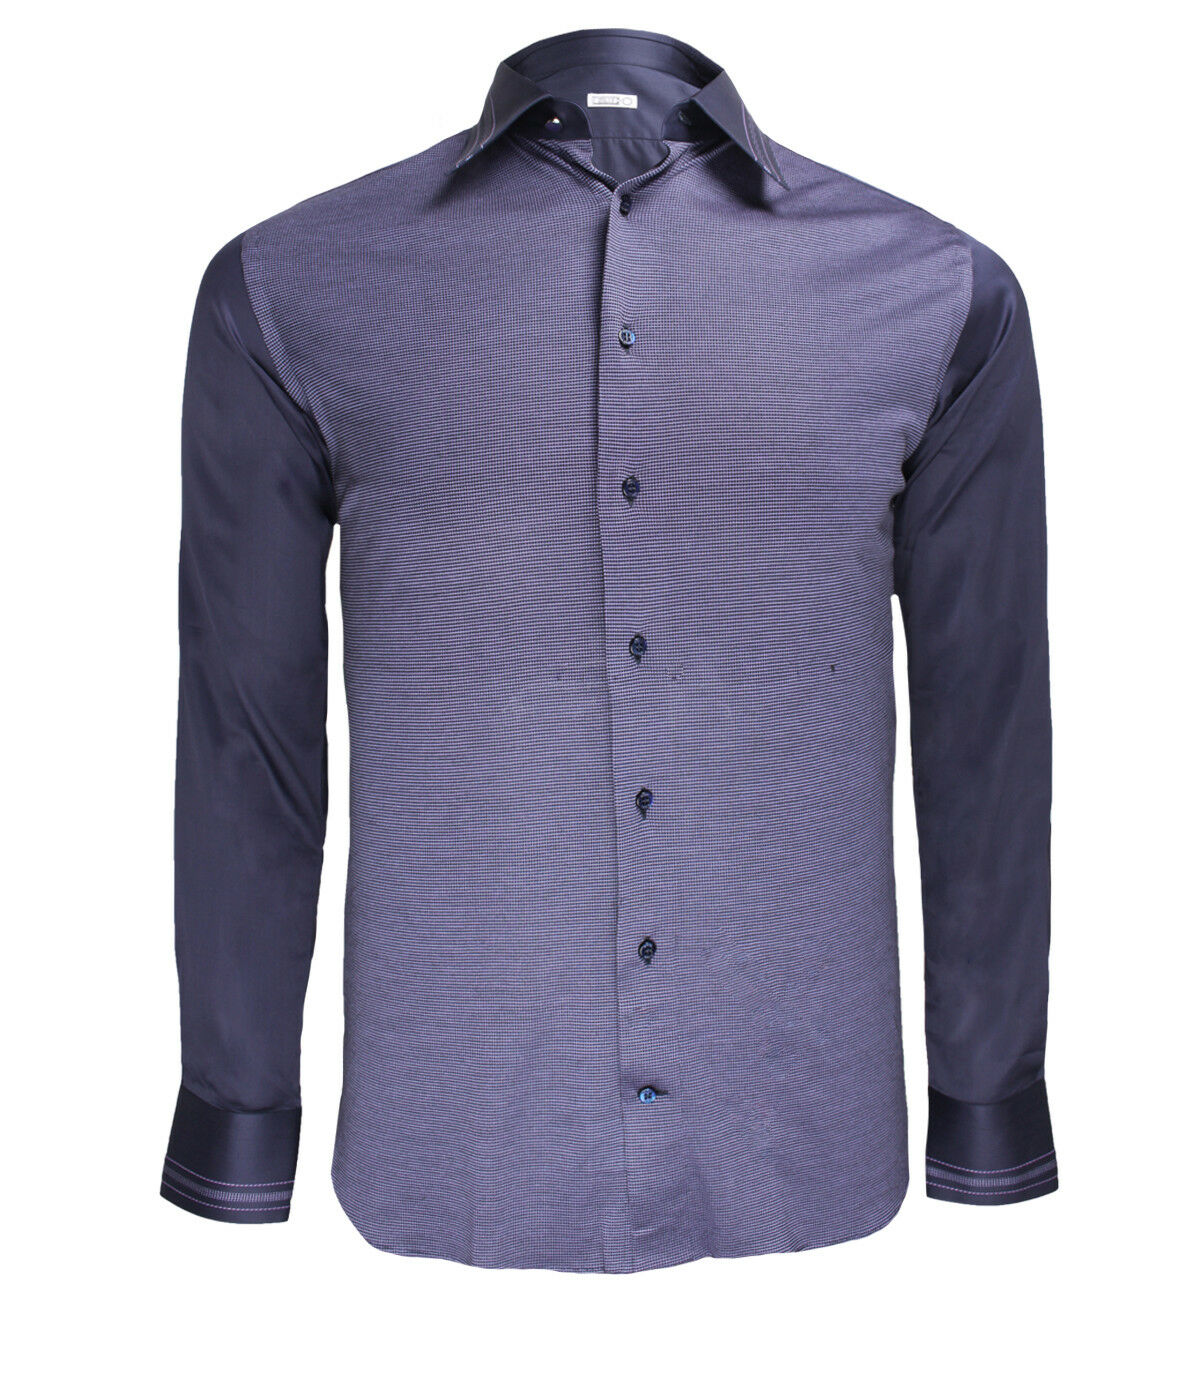 Zilli Men's Purple Cotton Dress Shirt Classic Fit, Size 40, 41, 44 Free Shipping